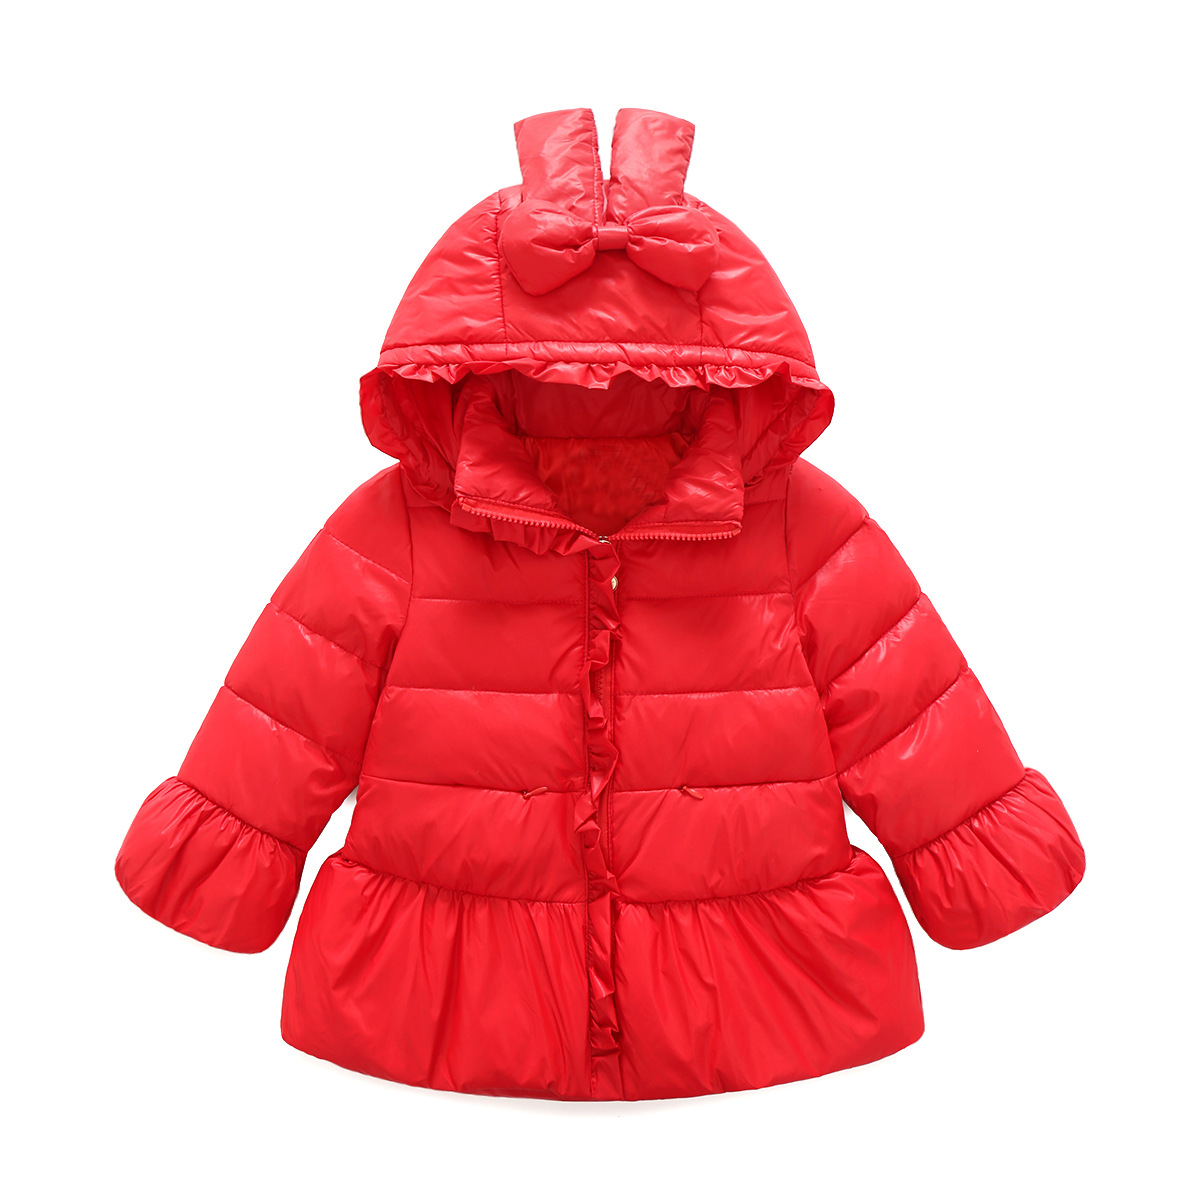 2017 Fashion Girls Winter Down Jacket Children Coats Warm Baby 100% Thick Duck Down Kids Outerwears for Cold -30 Degree Clothing fashion boys down jackets coats for winter warm 2017 baby boy thick duck down coat real fur children outerwears for cold winter